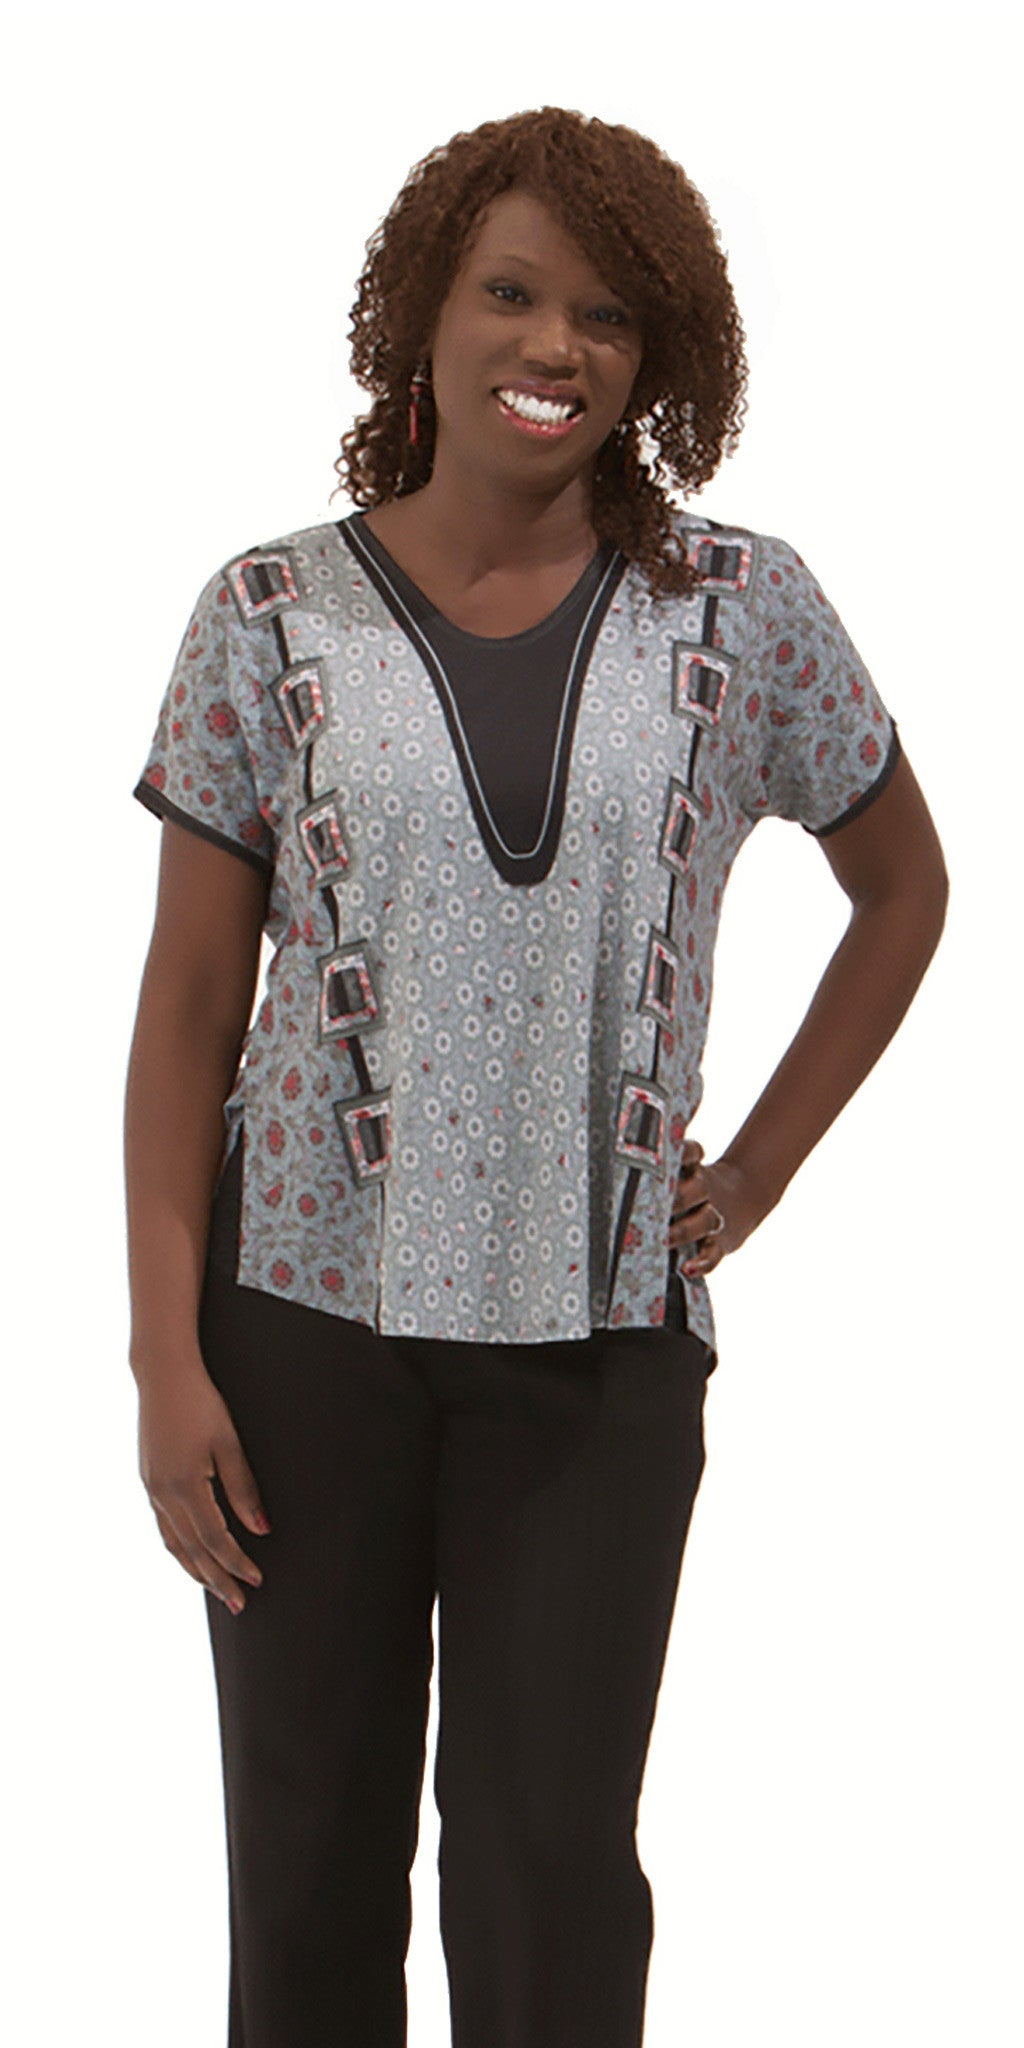 Modern Calico - Delicate Print Women's Short Sleeve Top